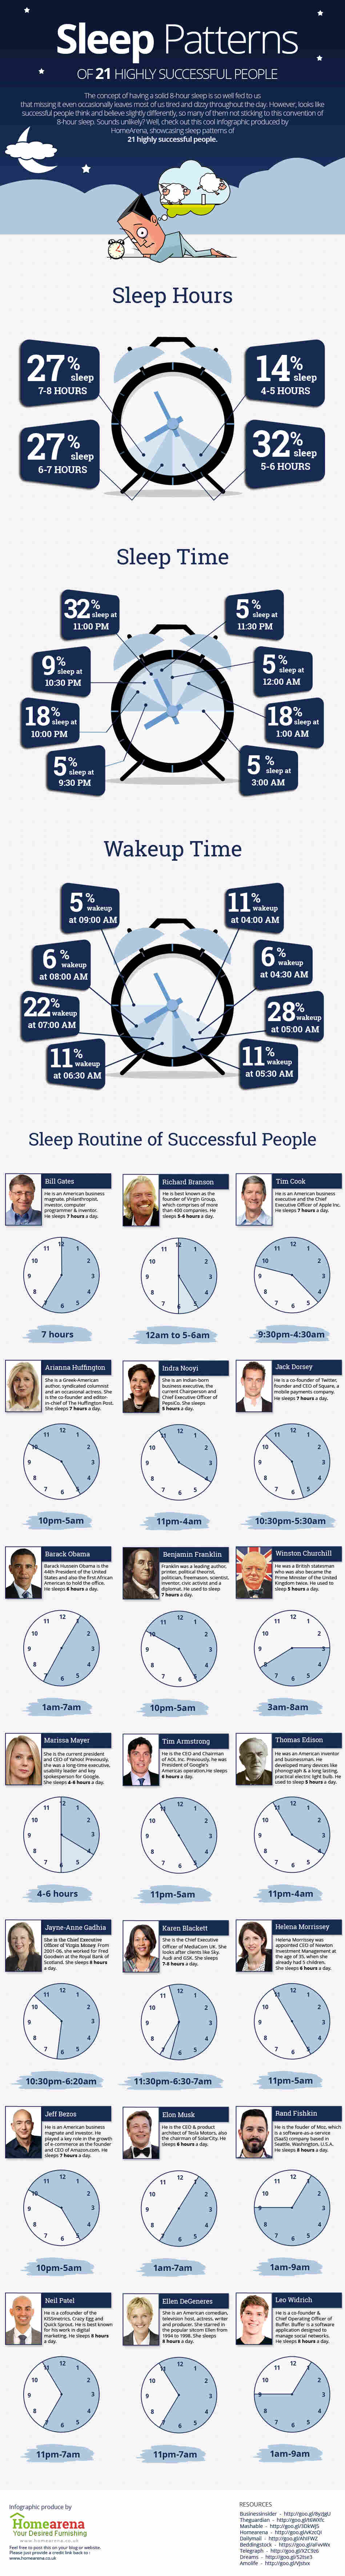 An infographic showing the sleep patterns of 21 highly successful people.